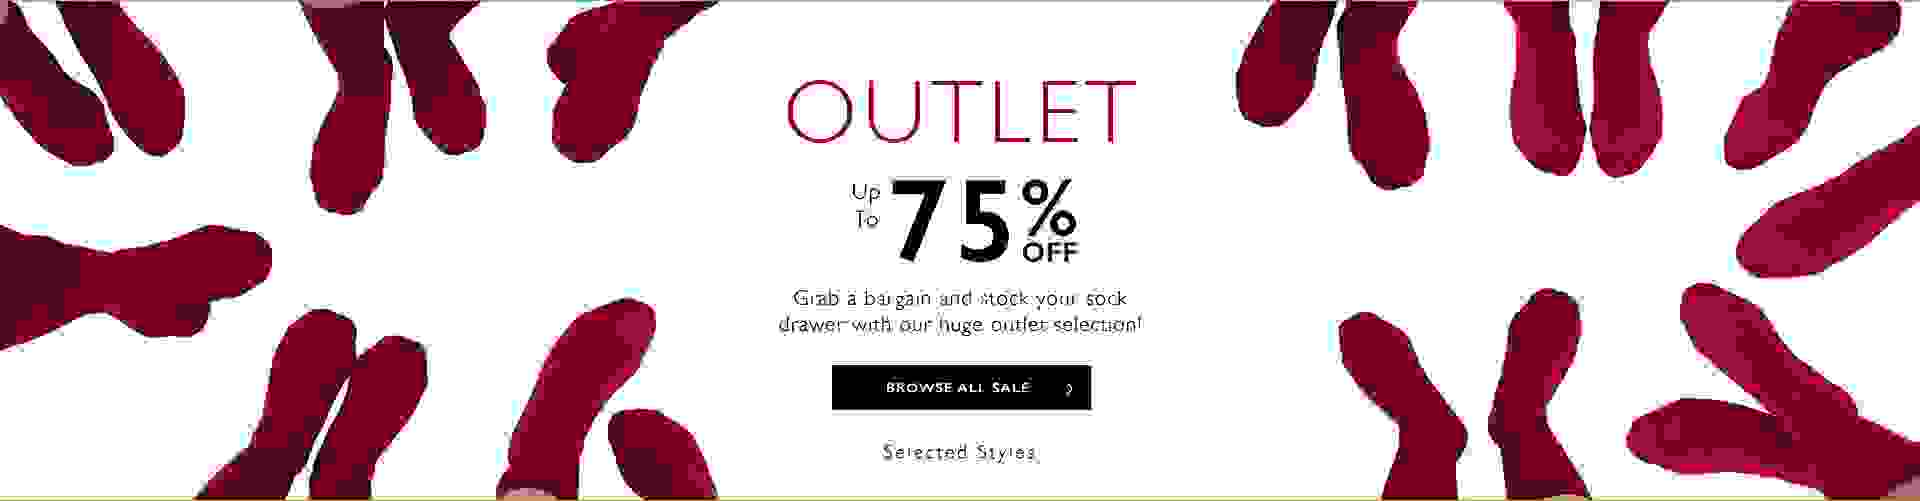 Outlet - Up to 75% off selected styles